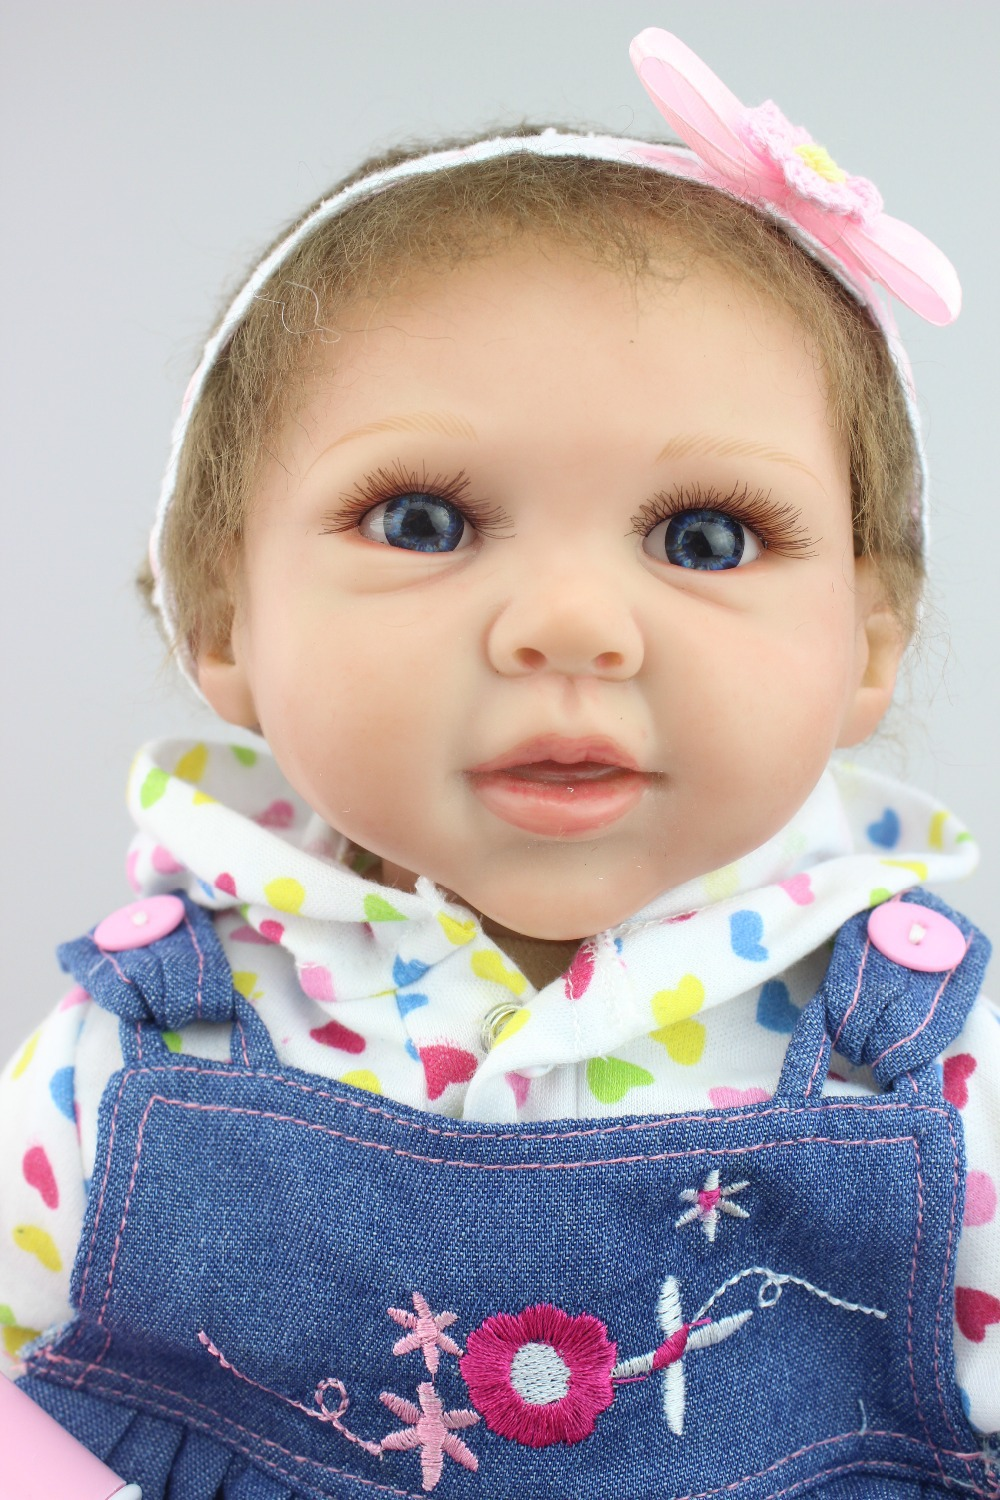 Newborn Simulation Babydoll Silicone Vinyl Doll Educational Enlightenment Baby toys Girls Present lovely doll newborn simulation babydoll silicone vinyl doll educational enlightenment baby toys girls present